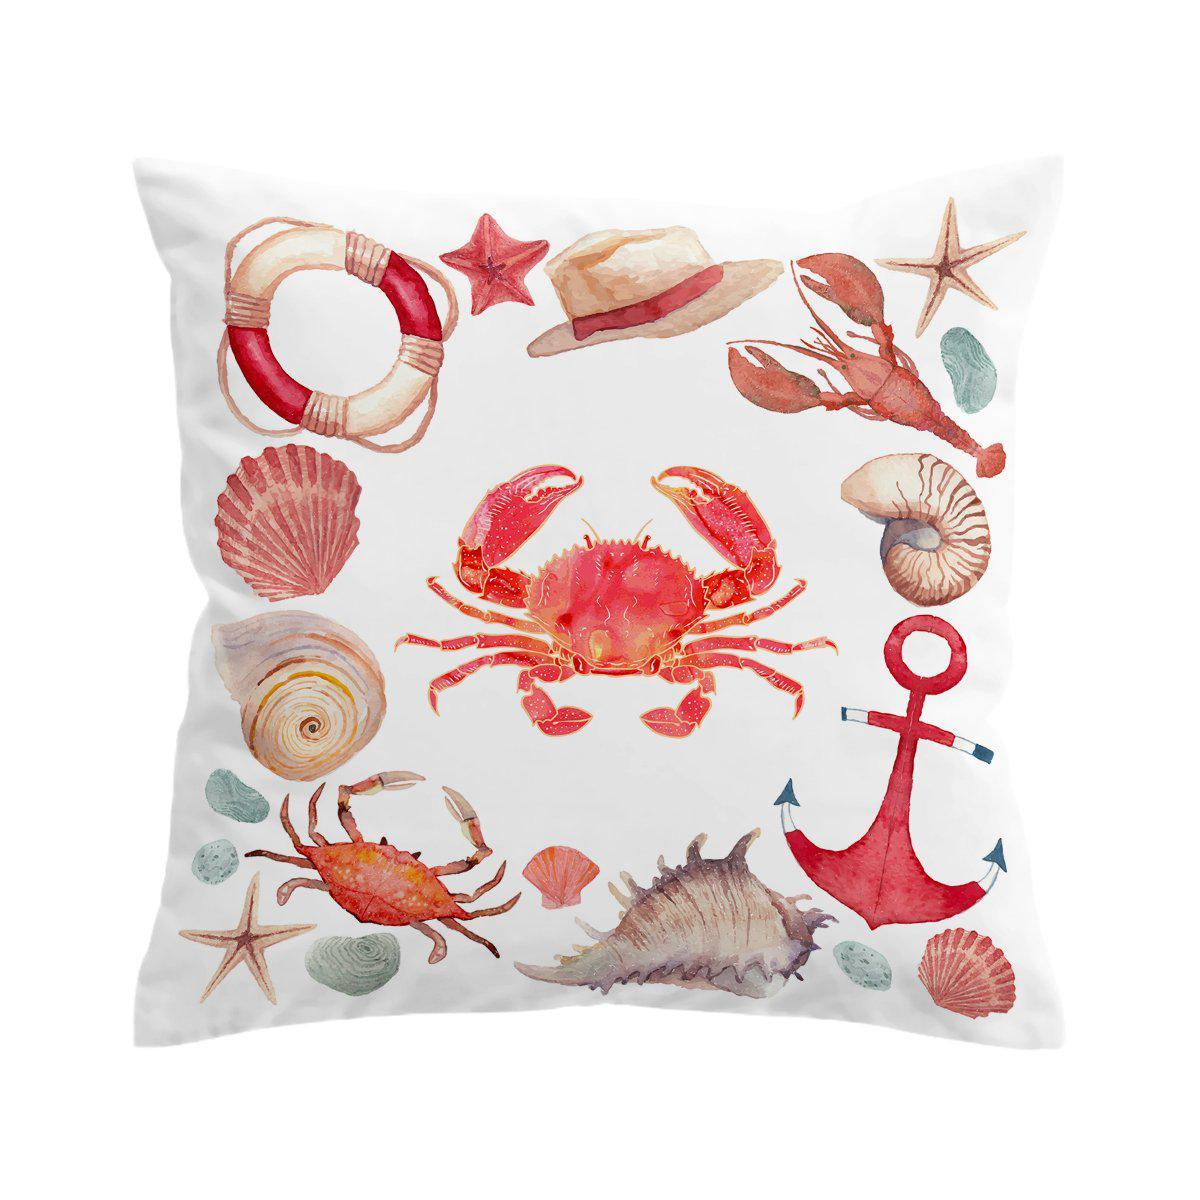 The Red Crab Pillow Cover-Coastal Passion